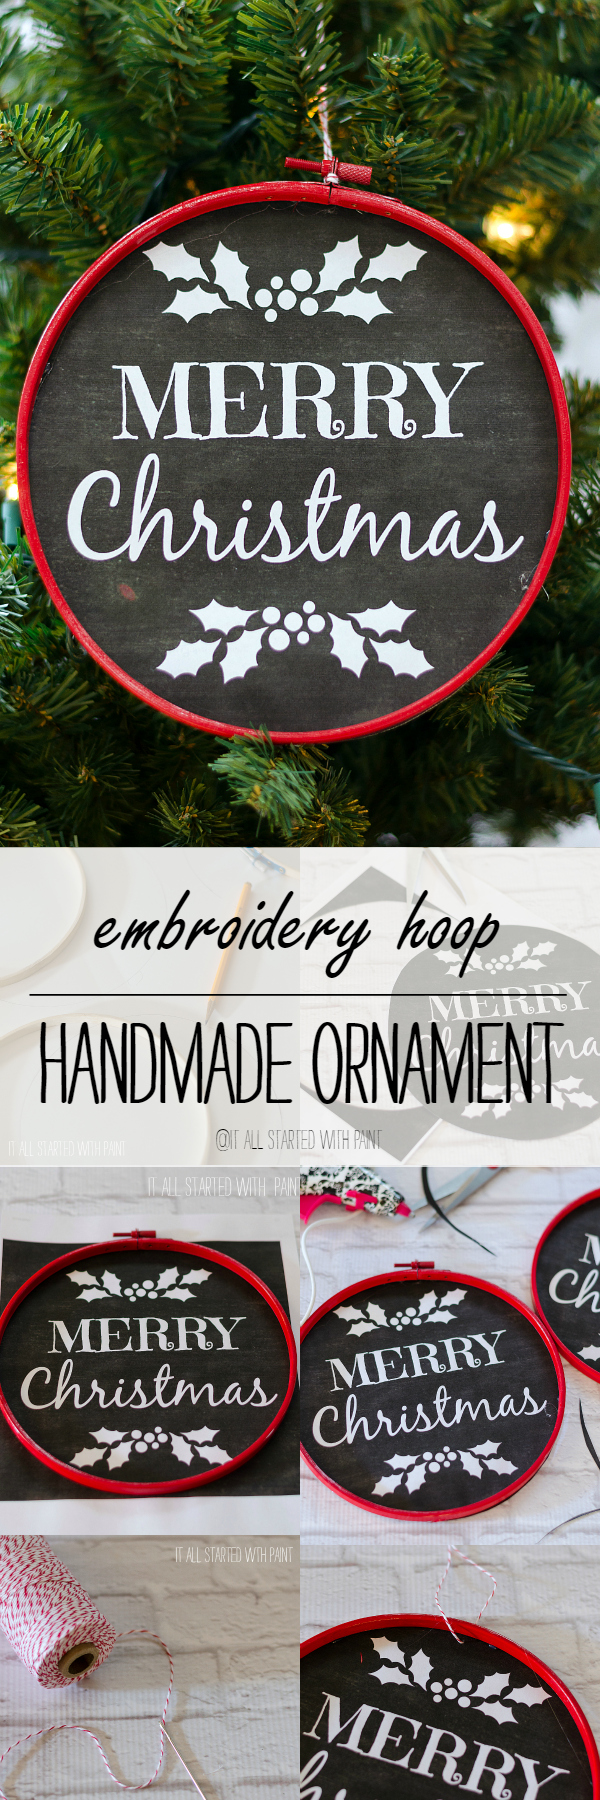 Handmade christmas ornament craft ideas embroidery hoop ornament